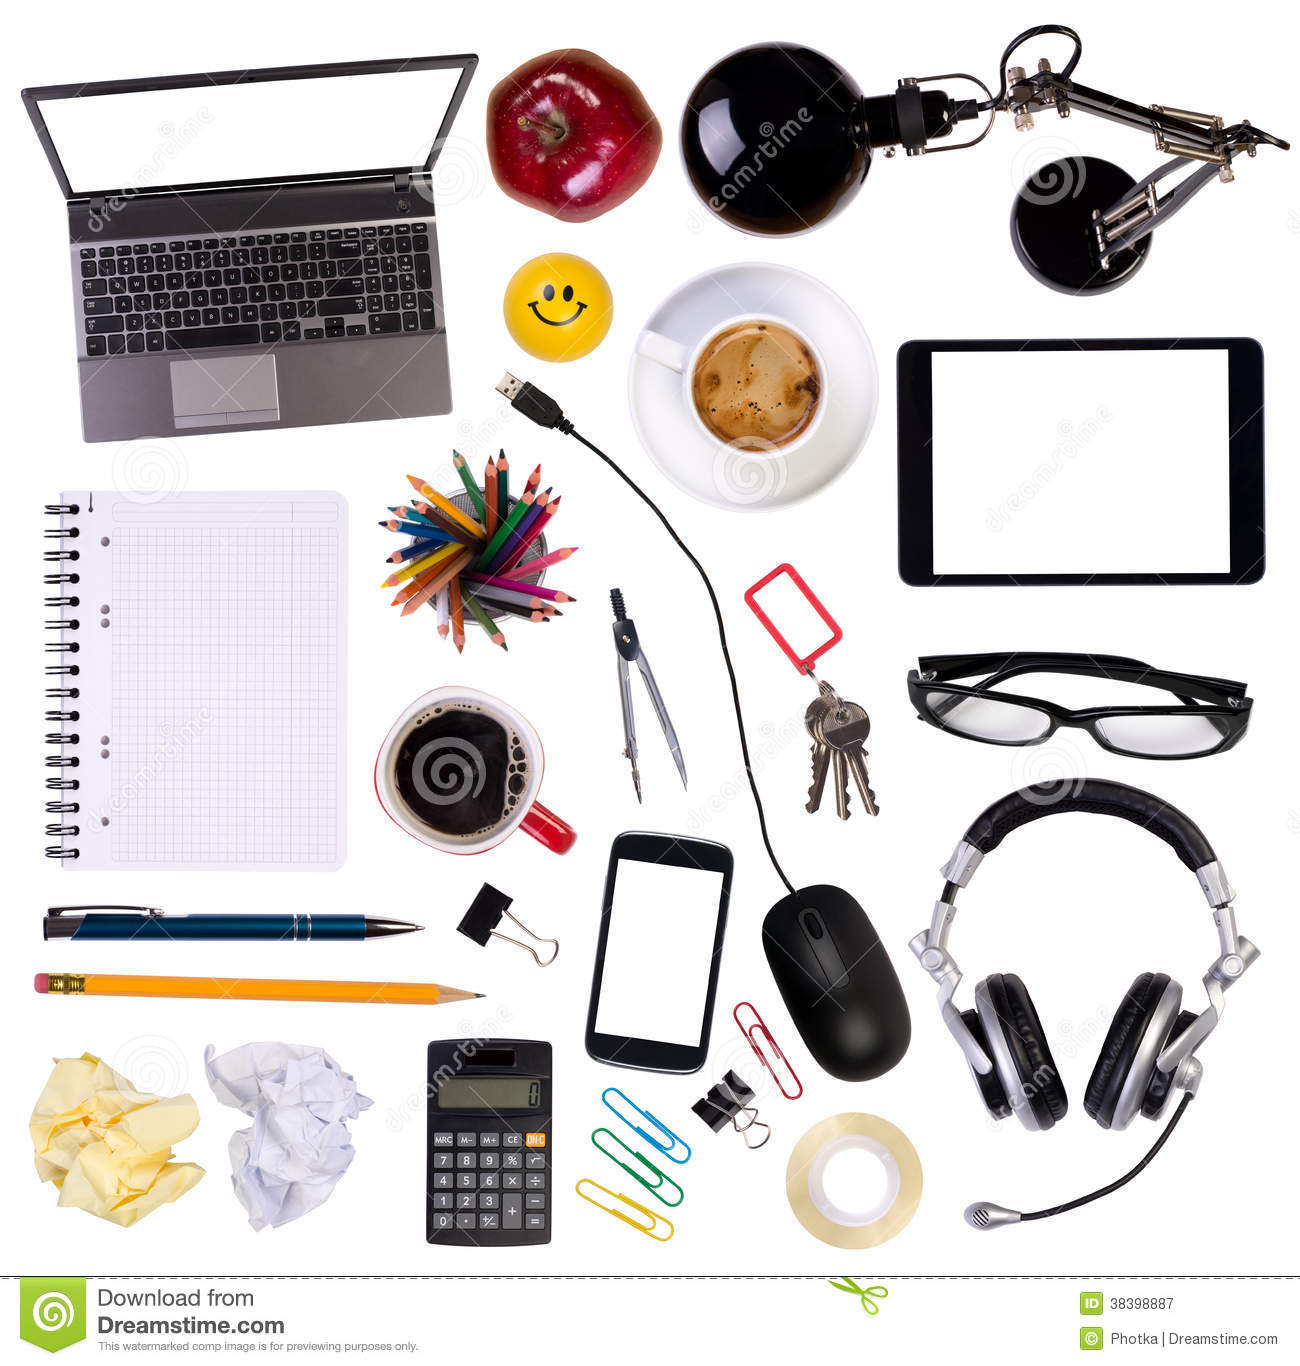 Desk Top View laptop tablet phone desk top view stock photos, images, & pictures